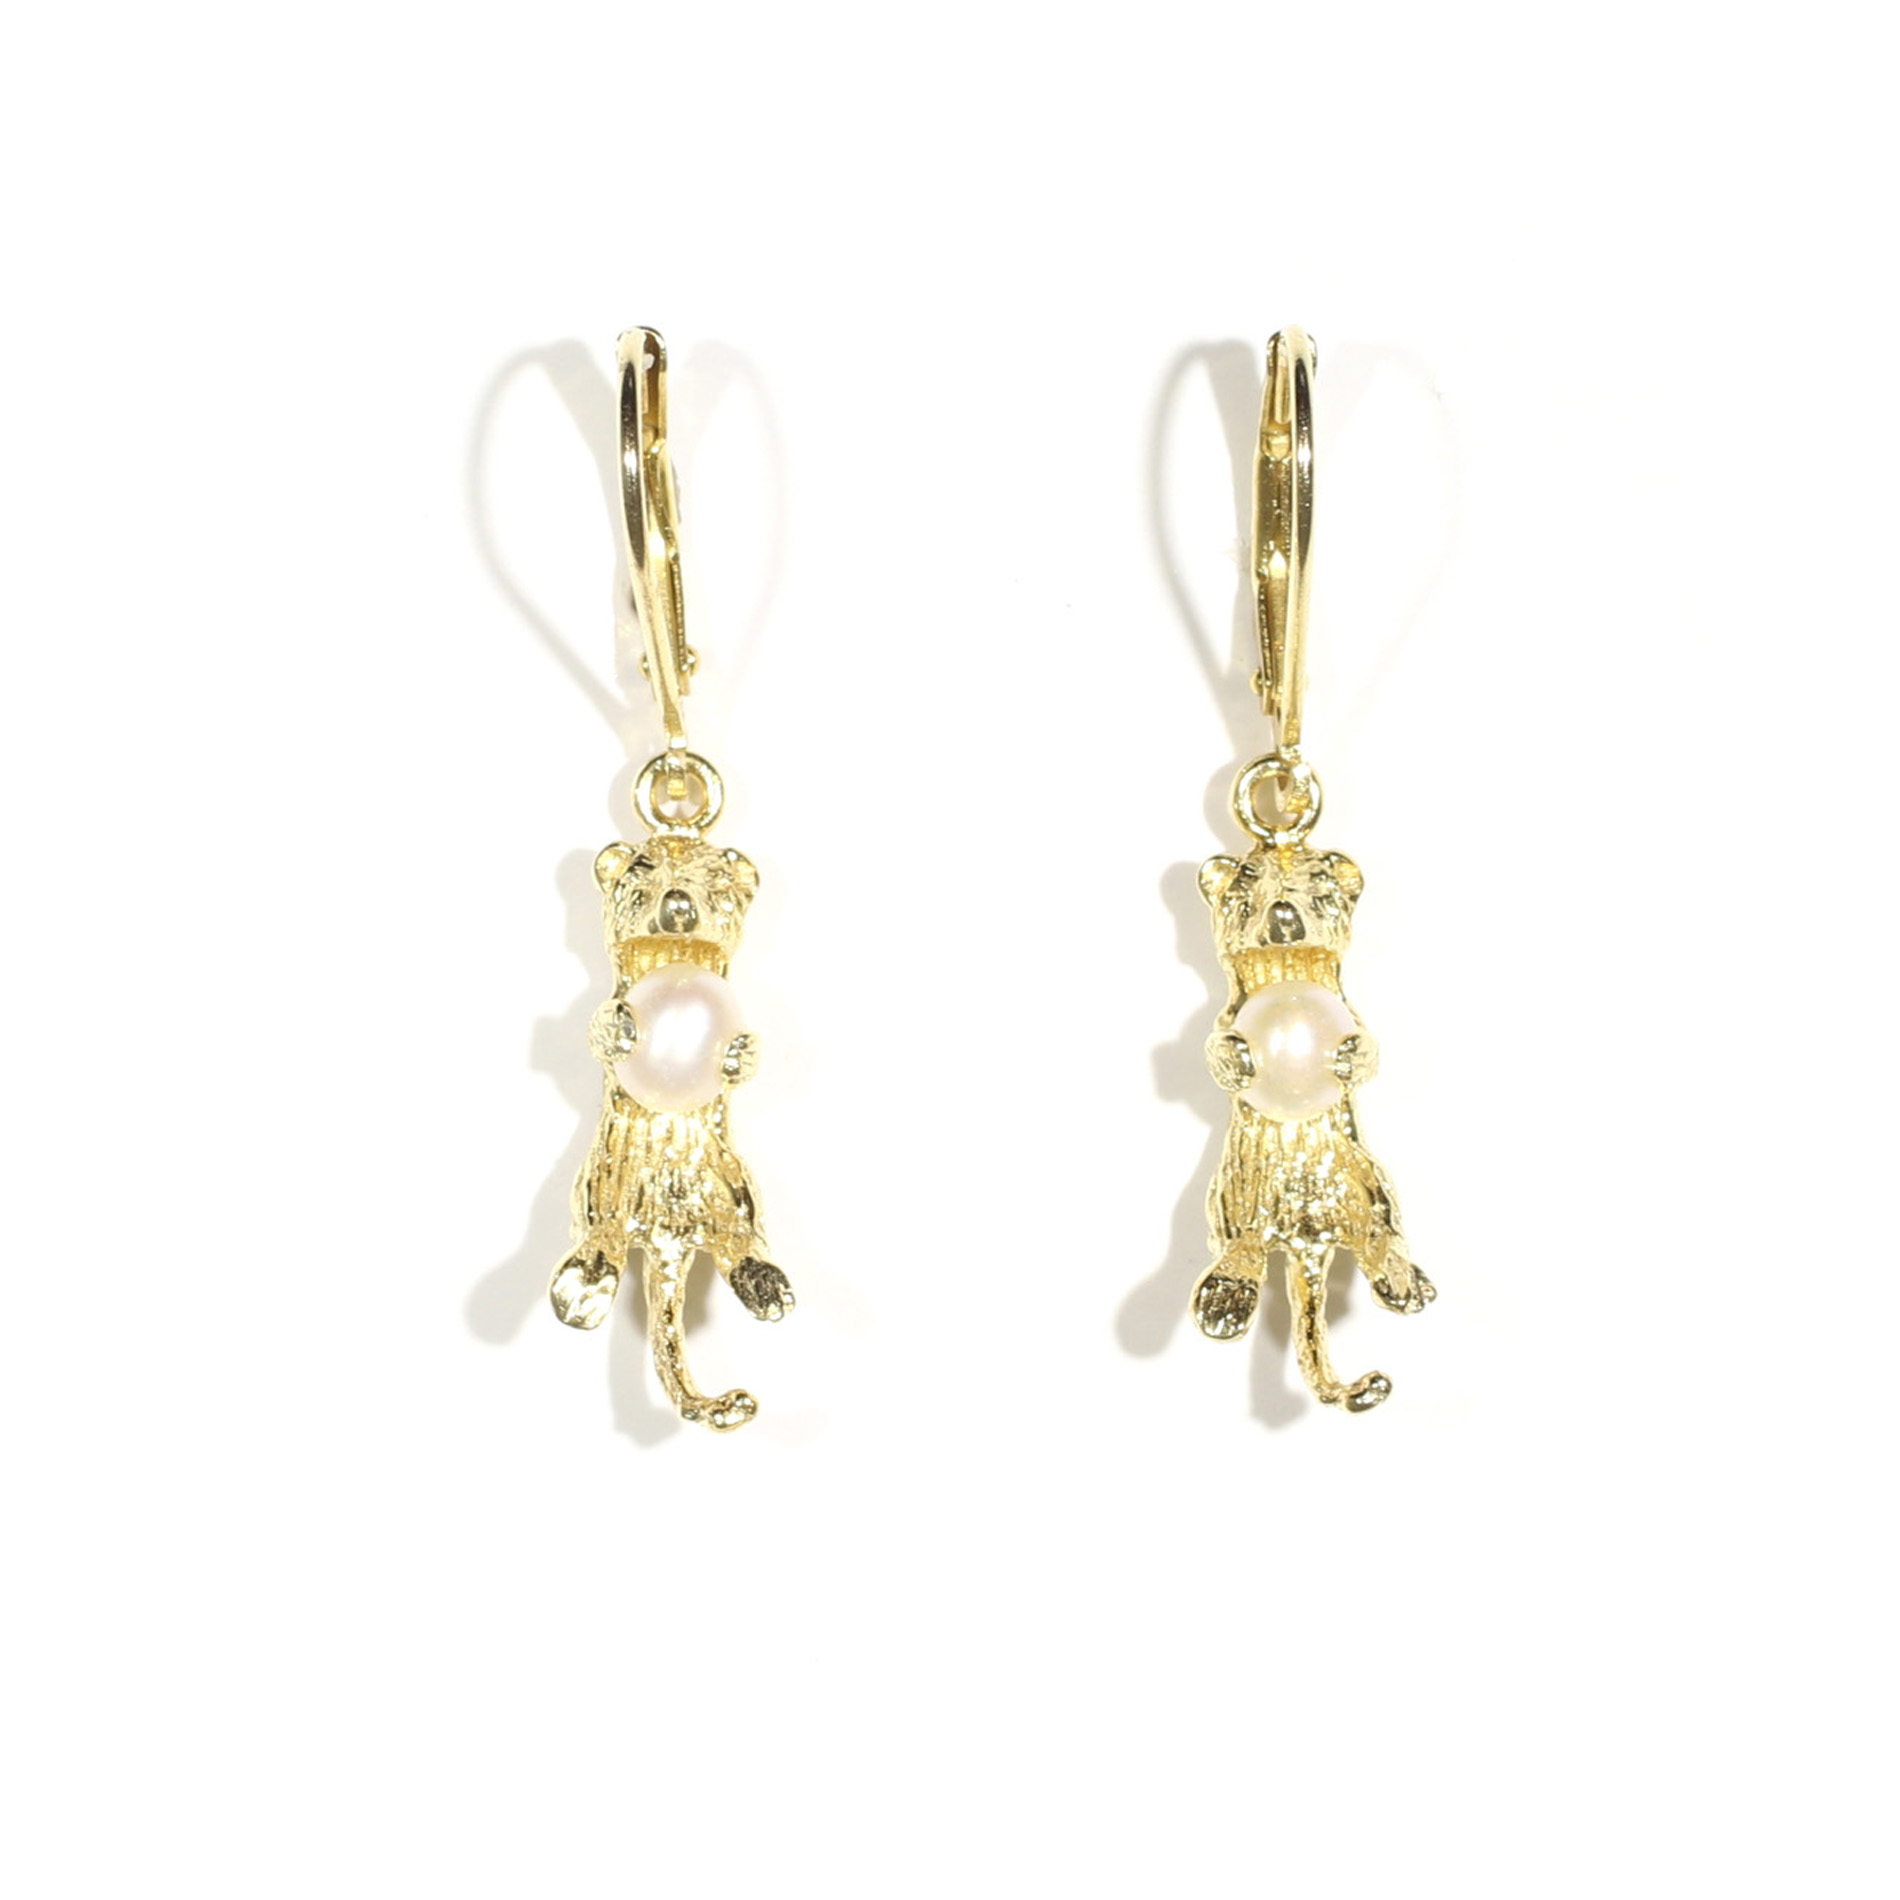 Small Sea Otter On A Leverback Earring